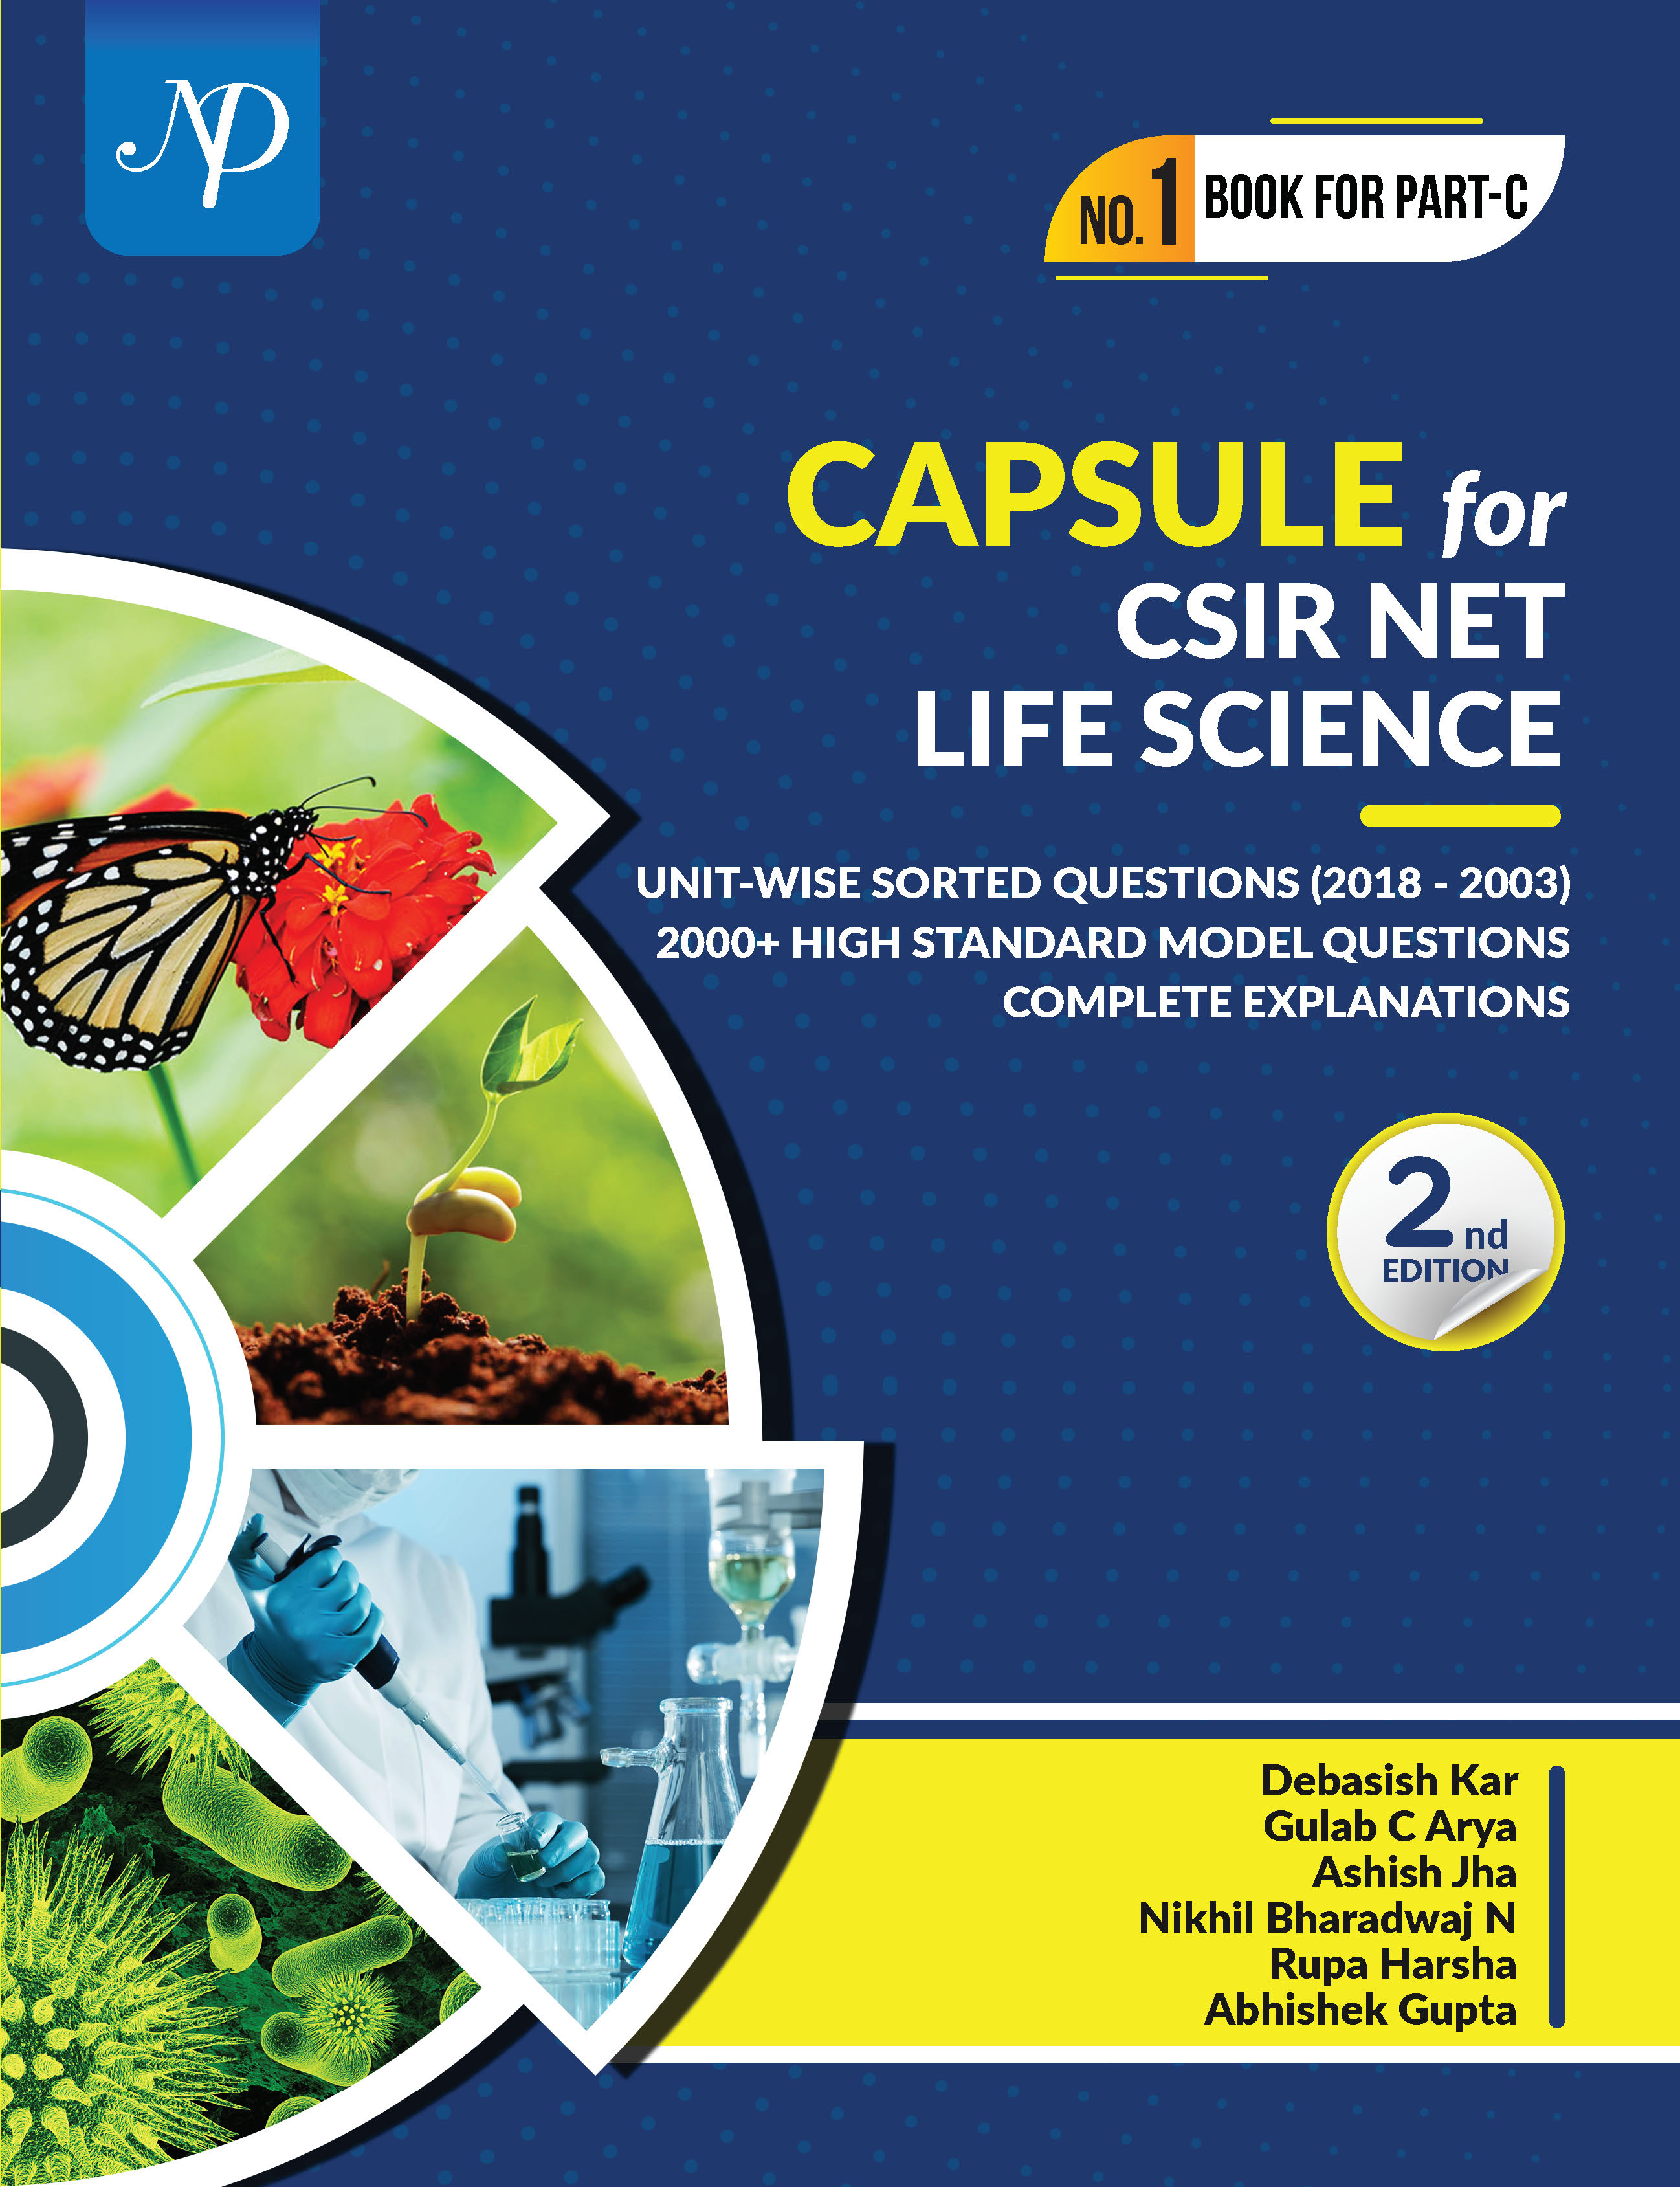 Capsule for CSIR NET Life Science CSIR Unit Wise sorted questions (15 years) 2000 Model question & answer with explanation 2nd Edition